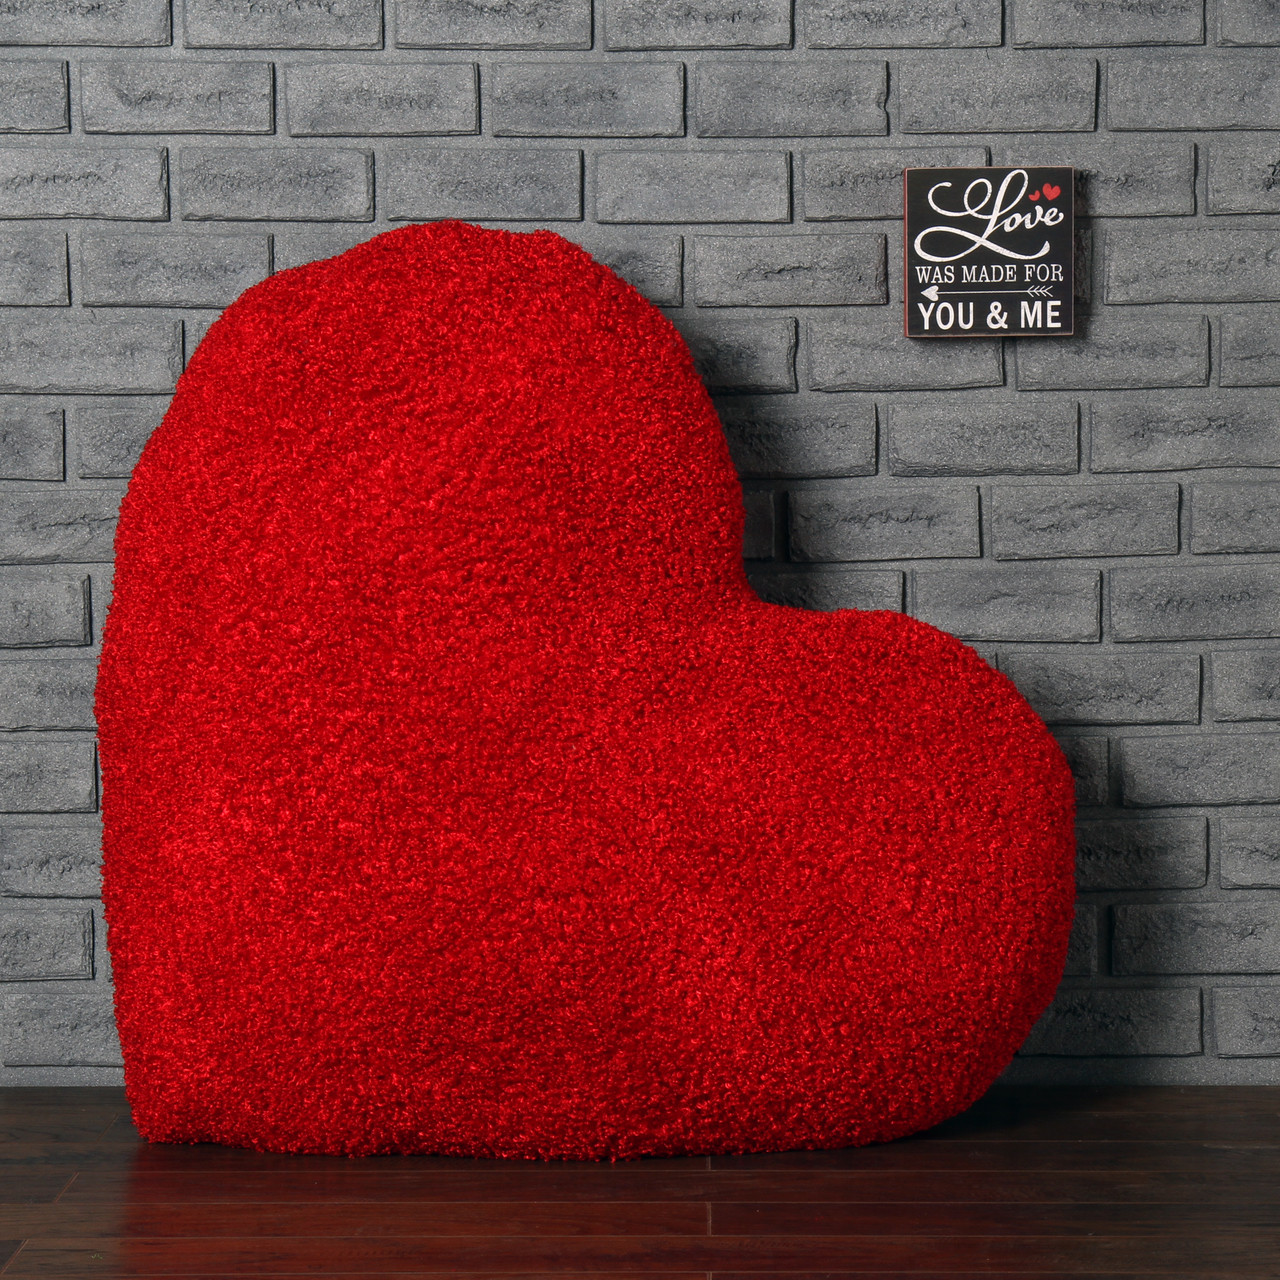 56in Jumbo Heart Cushion for Valentine's Day